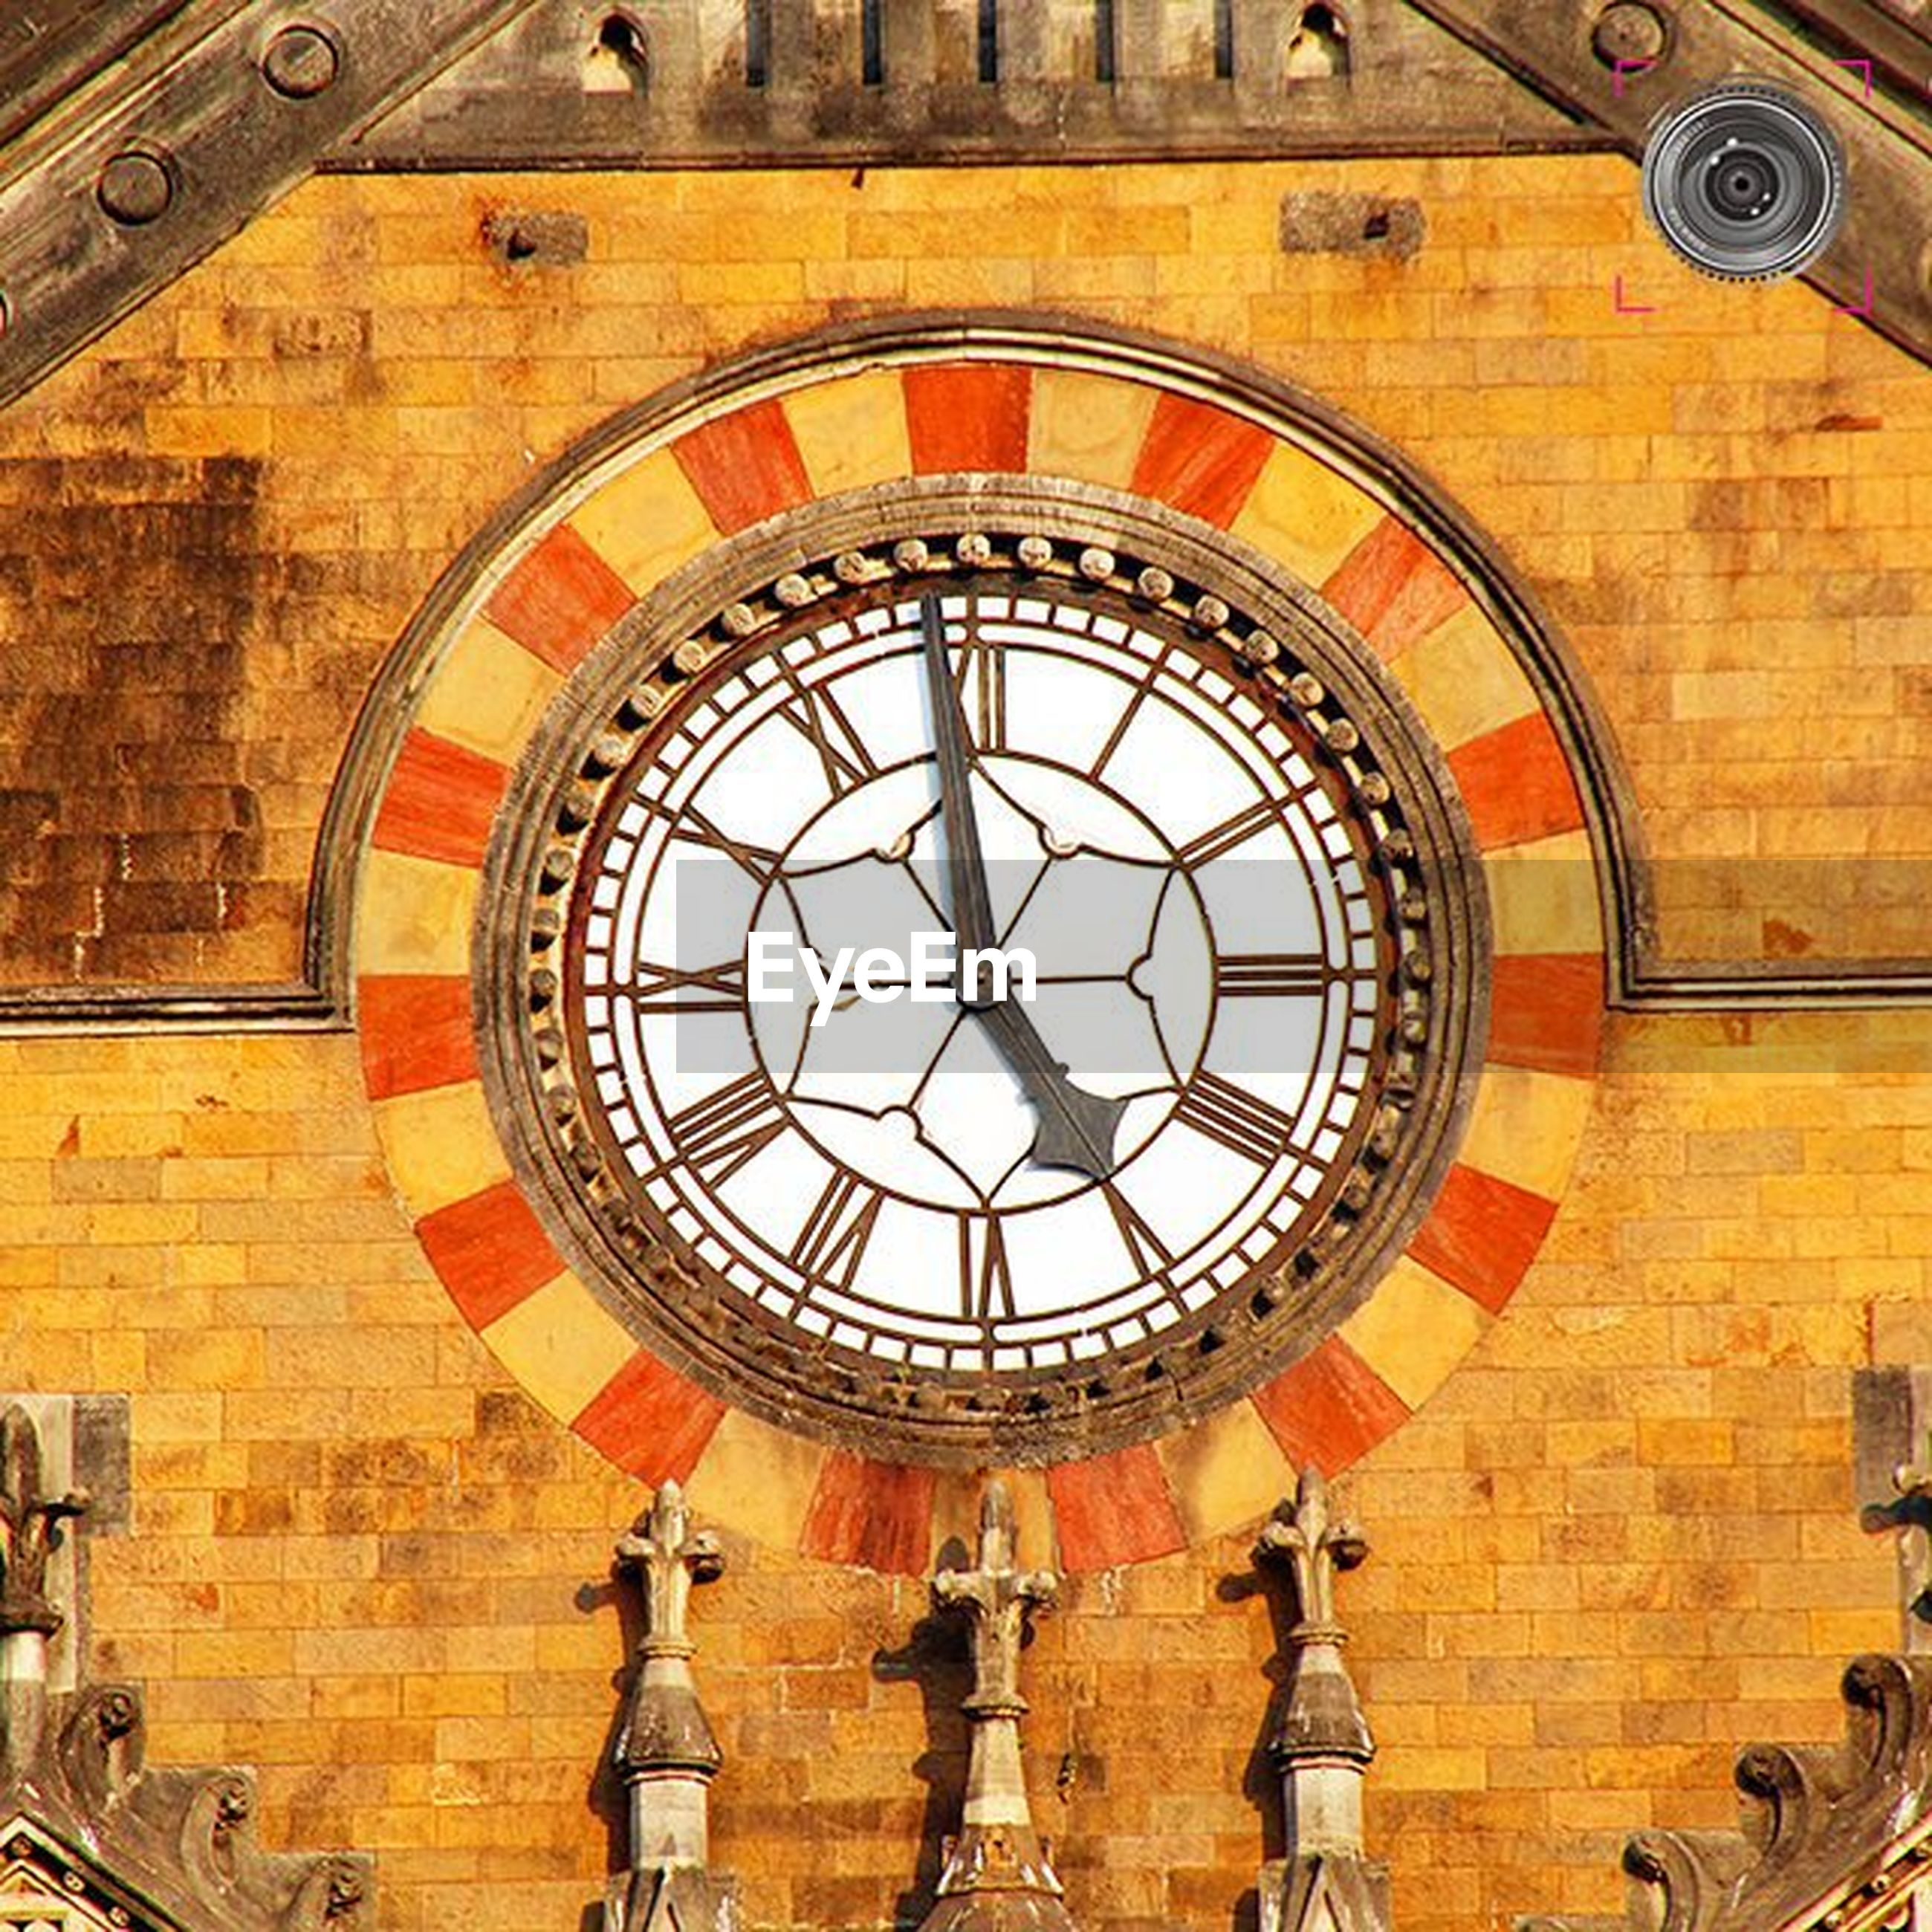 indoors, clock, time, circle, low angle view, architecture, built structure, clock face, ceiling, directly below, roman numeral, design, pattern, geometric shape, church, religion, ornate, minute hand, no people